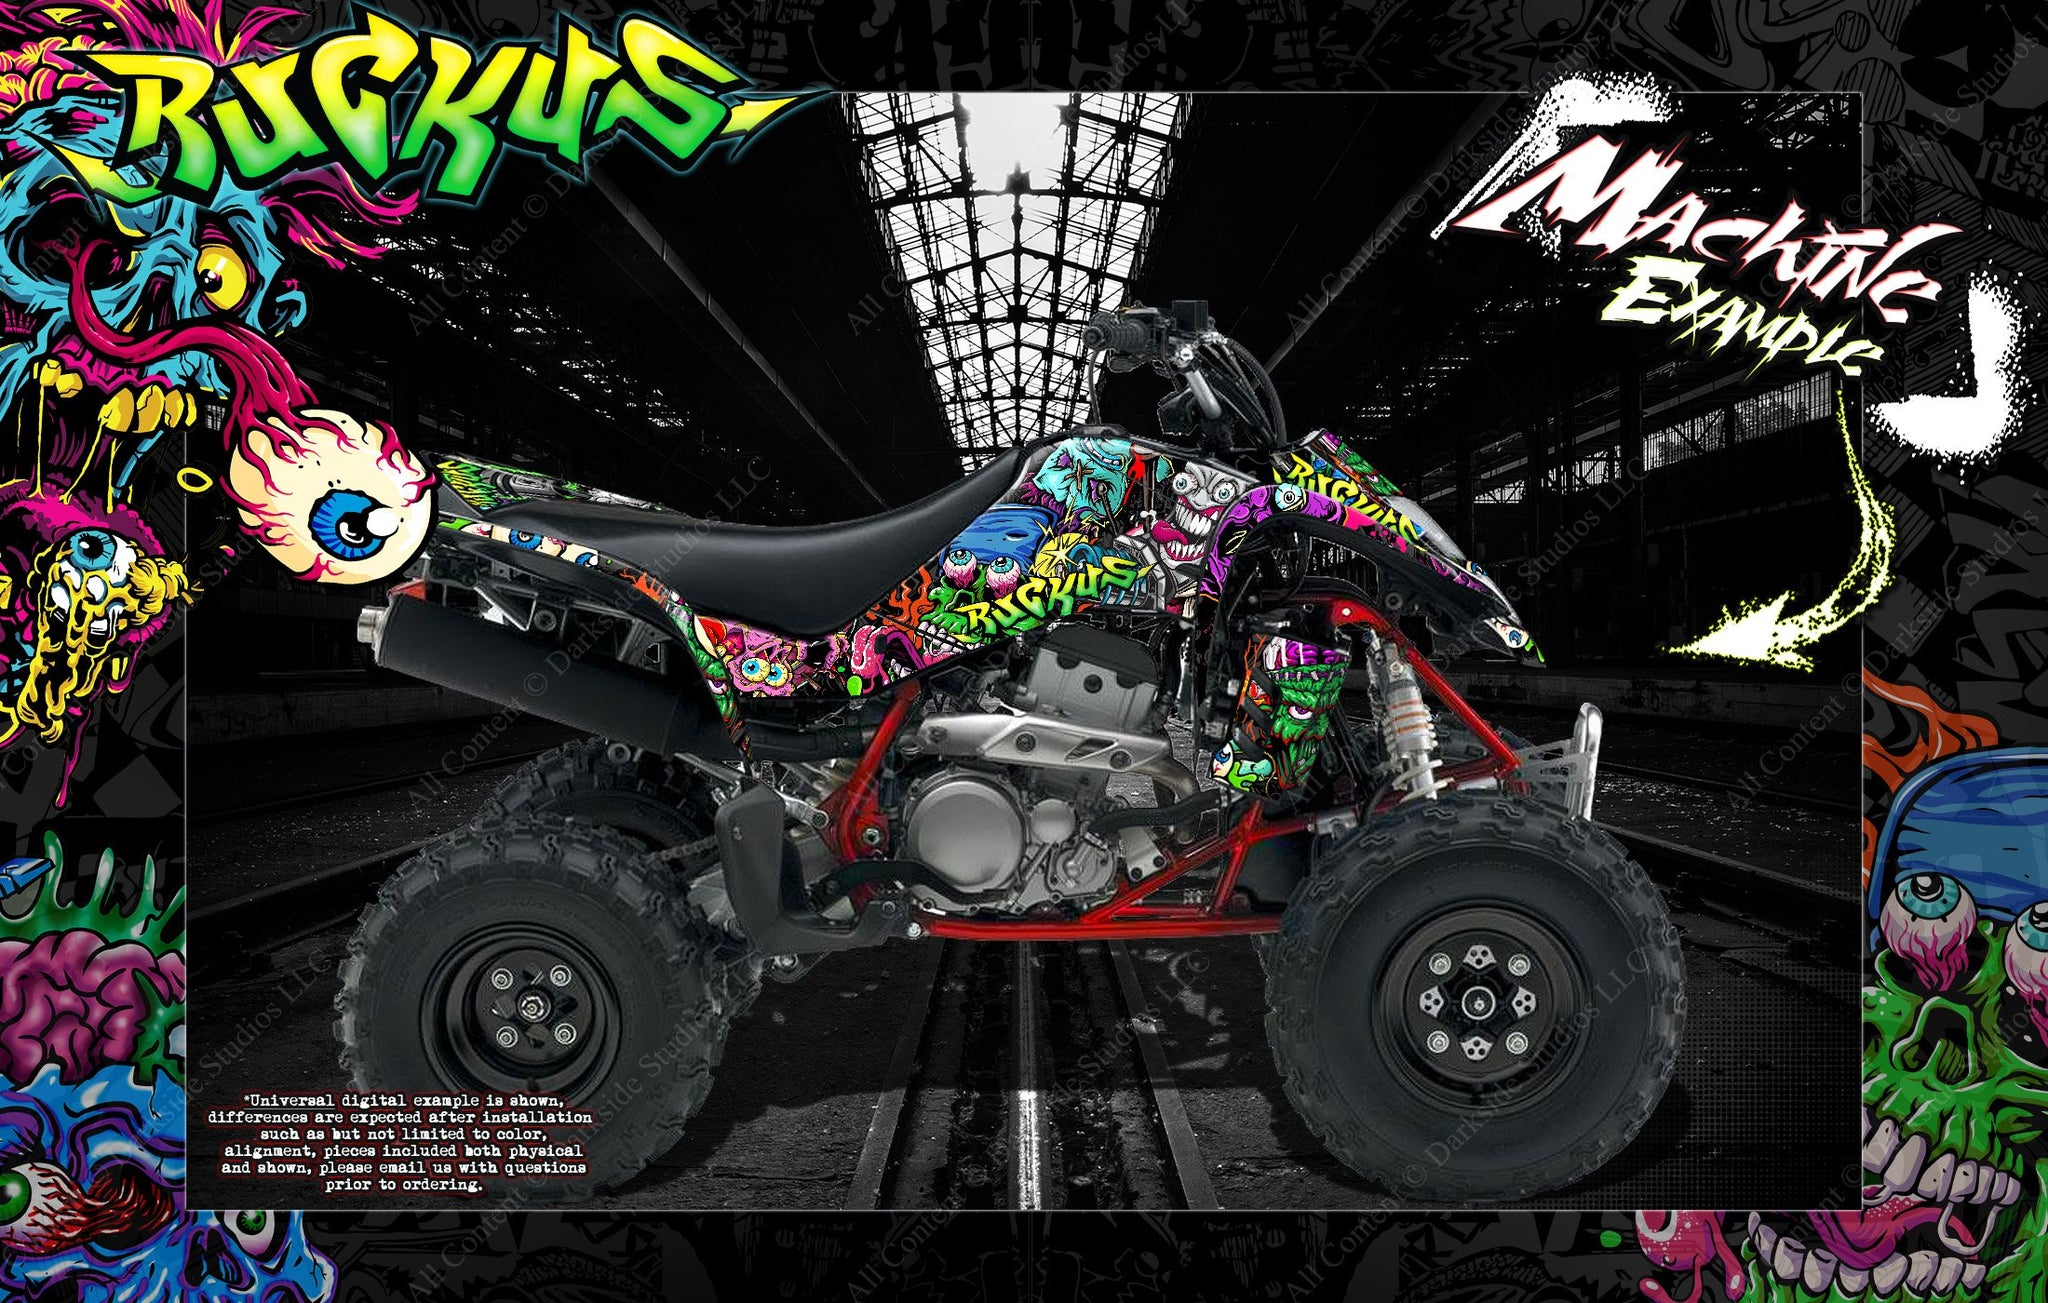 KAWASAKI KFX400 SUZUKI LTZ400 2003-2019 GRAPHICS WRAP 'RUCKUS' WITH CUSTOM  COLOR CHOICE